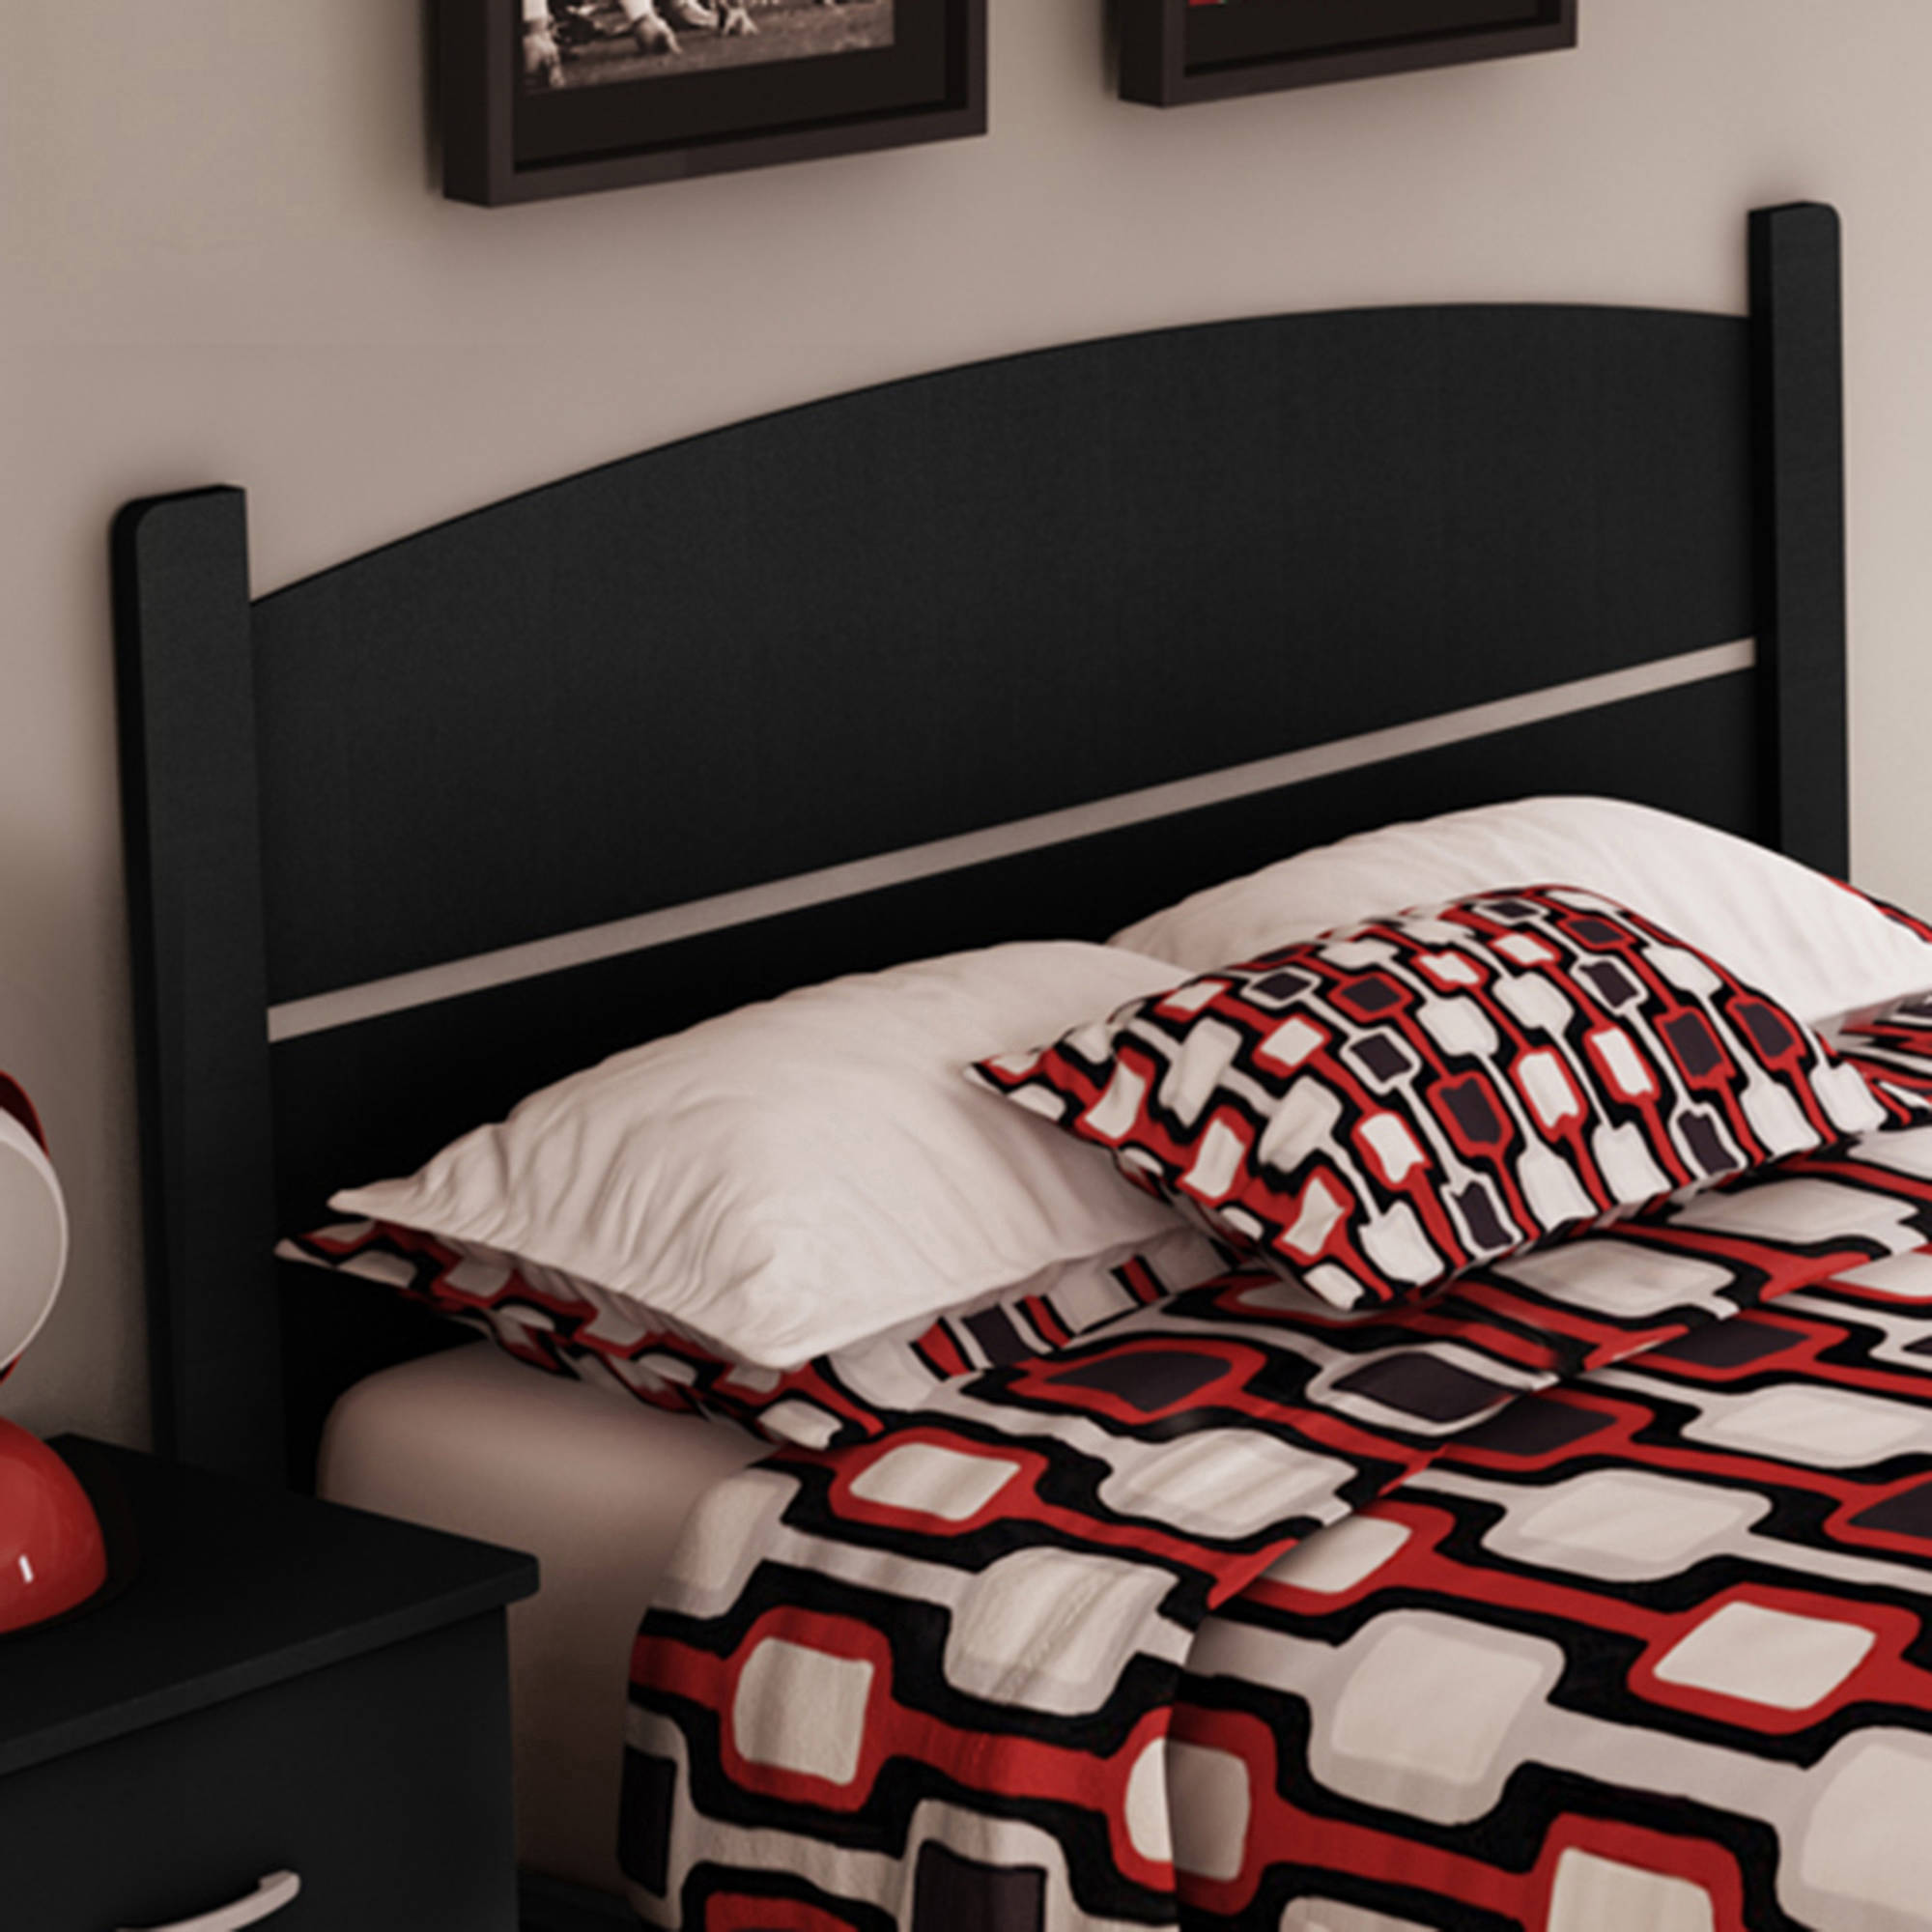 Black and white bedding walmart - Black And White Bedding Walmart 25